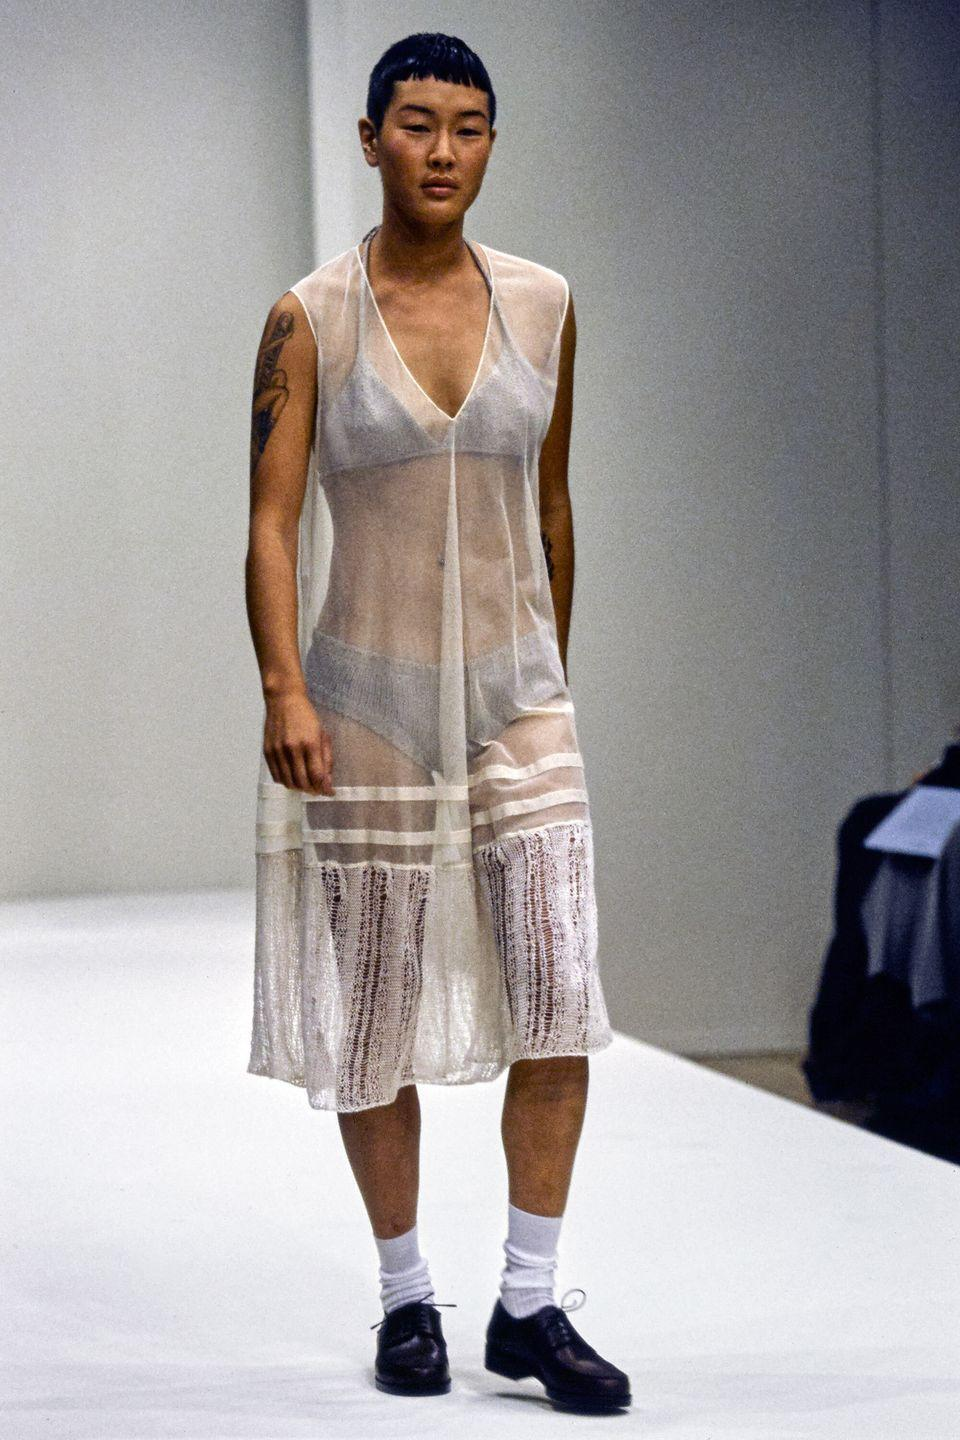 <p>Asian, 5'7, and an out and proud lesbian, Jenny Shimizu didn't fit into any prescribed box. Still, the California native persevered in the fashion industry, becoming the first Asian model to walk down a major runway (Prada) and star in campaigns for Calvin Klein, Hourglass Cosmetics, and Banana Republic. She's also appeared in a film alongside Angelina Jolie (who she reportedly dated) and was a judge on <em>Make Me a Supermodel</em>. </p>